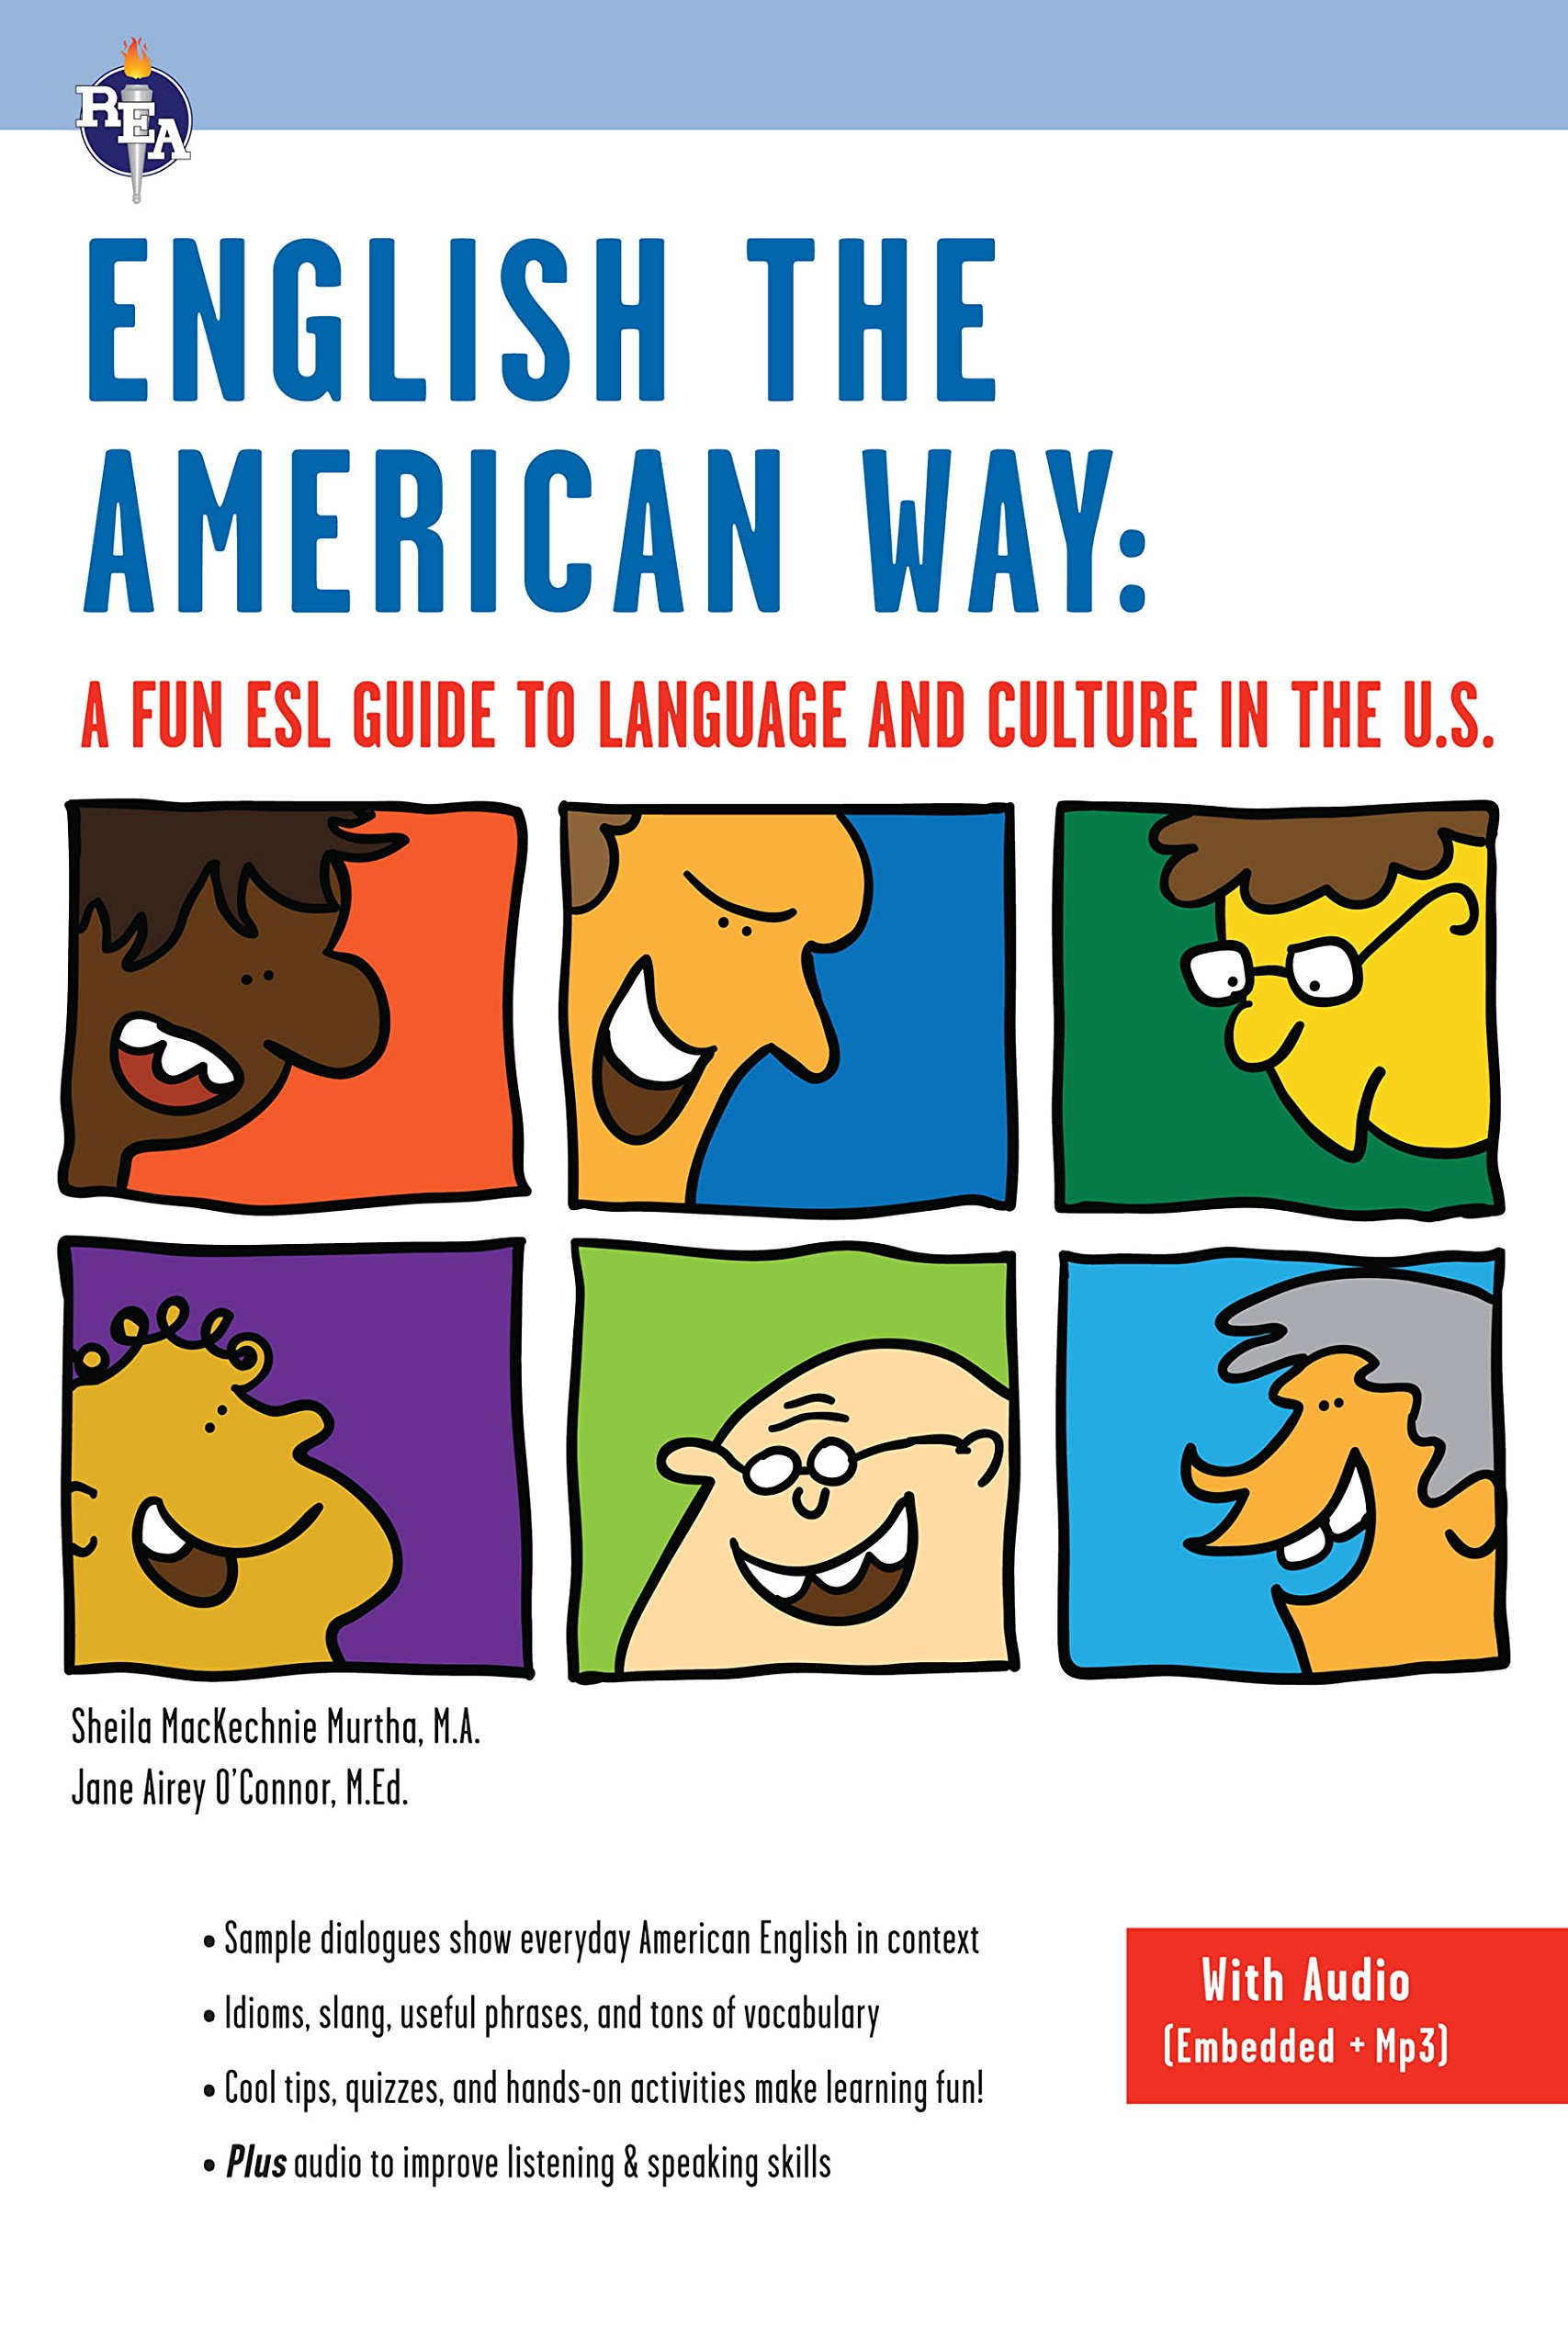 English The American Way  A Fun ESL Guide To Language And Culture In The U.S.  With Embedded Audio And MP3   English As A Second Language Series   English Edition